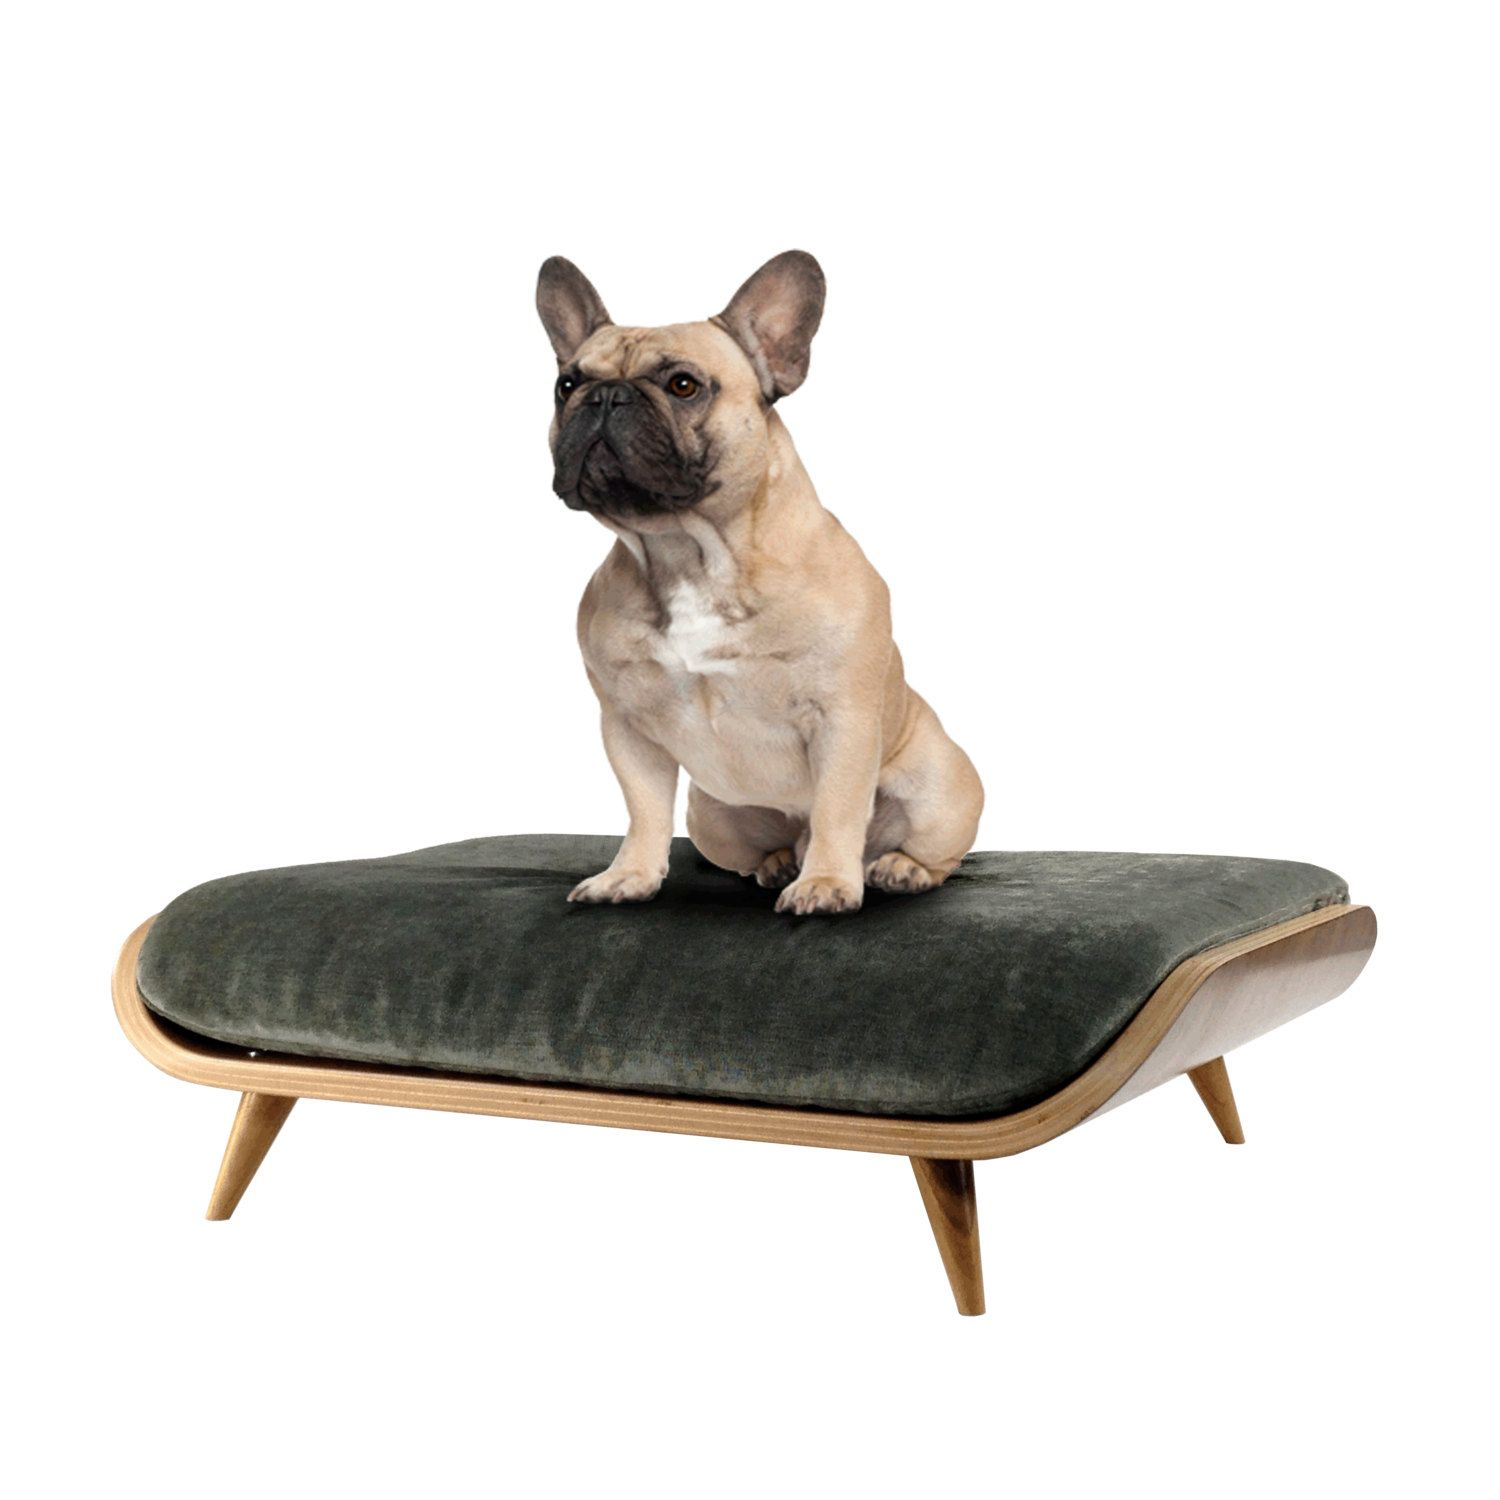 Midcentury Modern Dog Bed By Cairudesign On Etsy 255 00